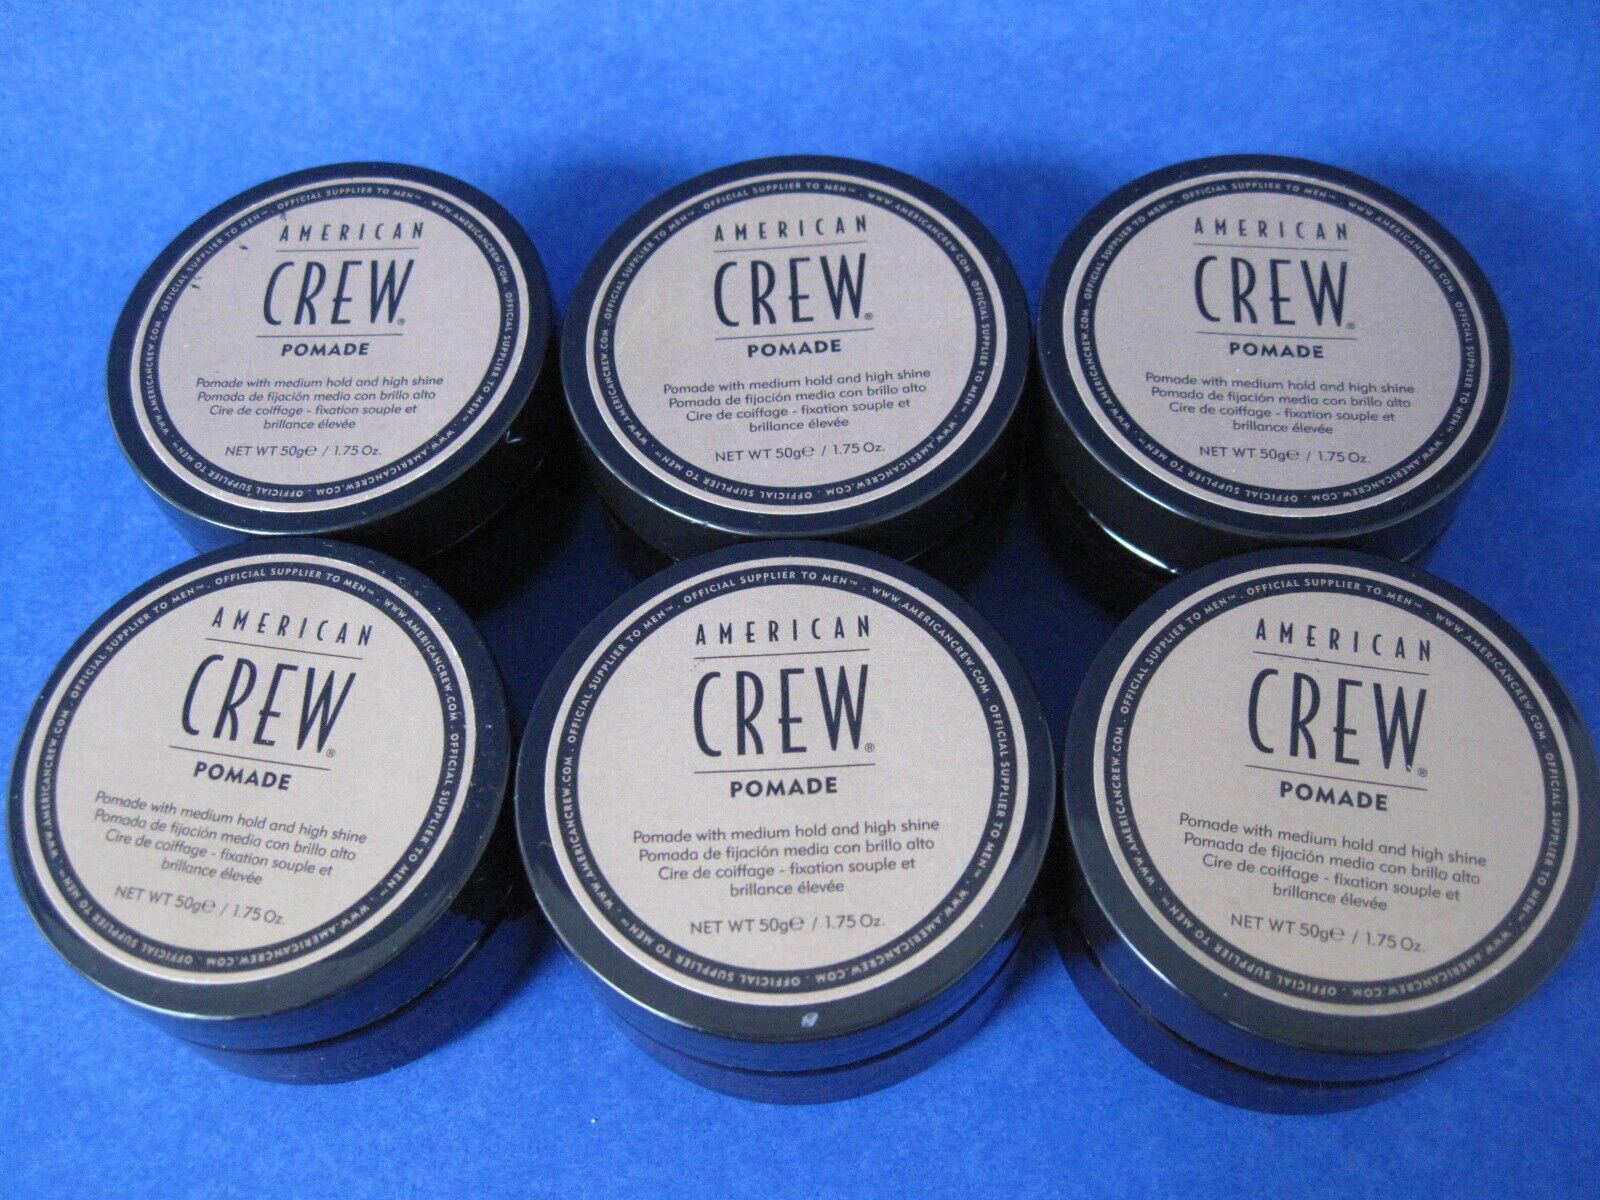 American Crew Pomade 1.75 oz Lot of 6 jars